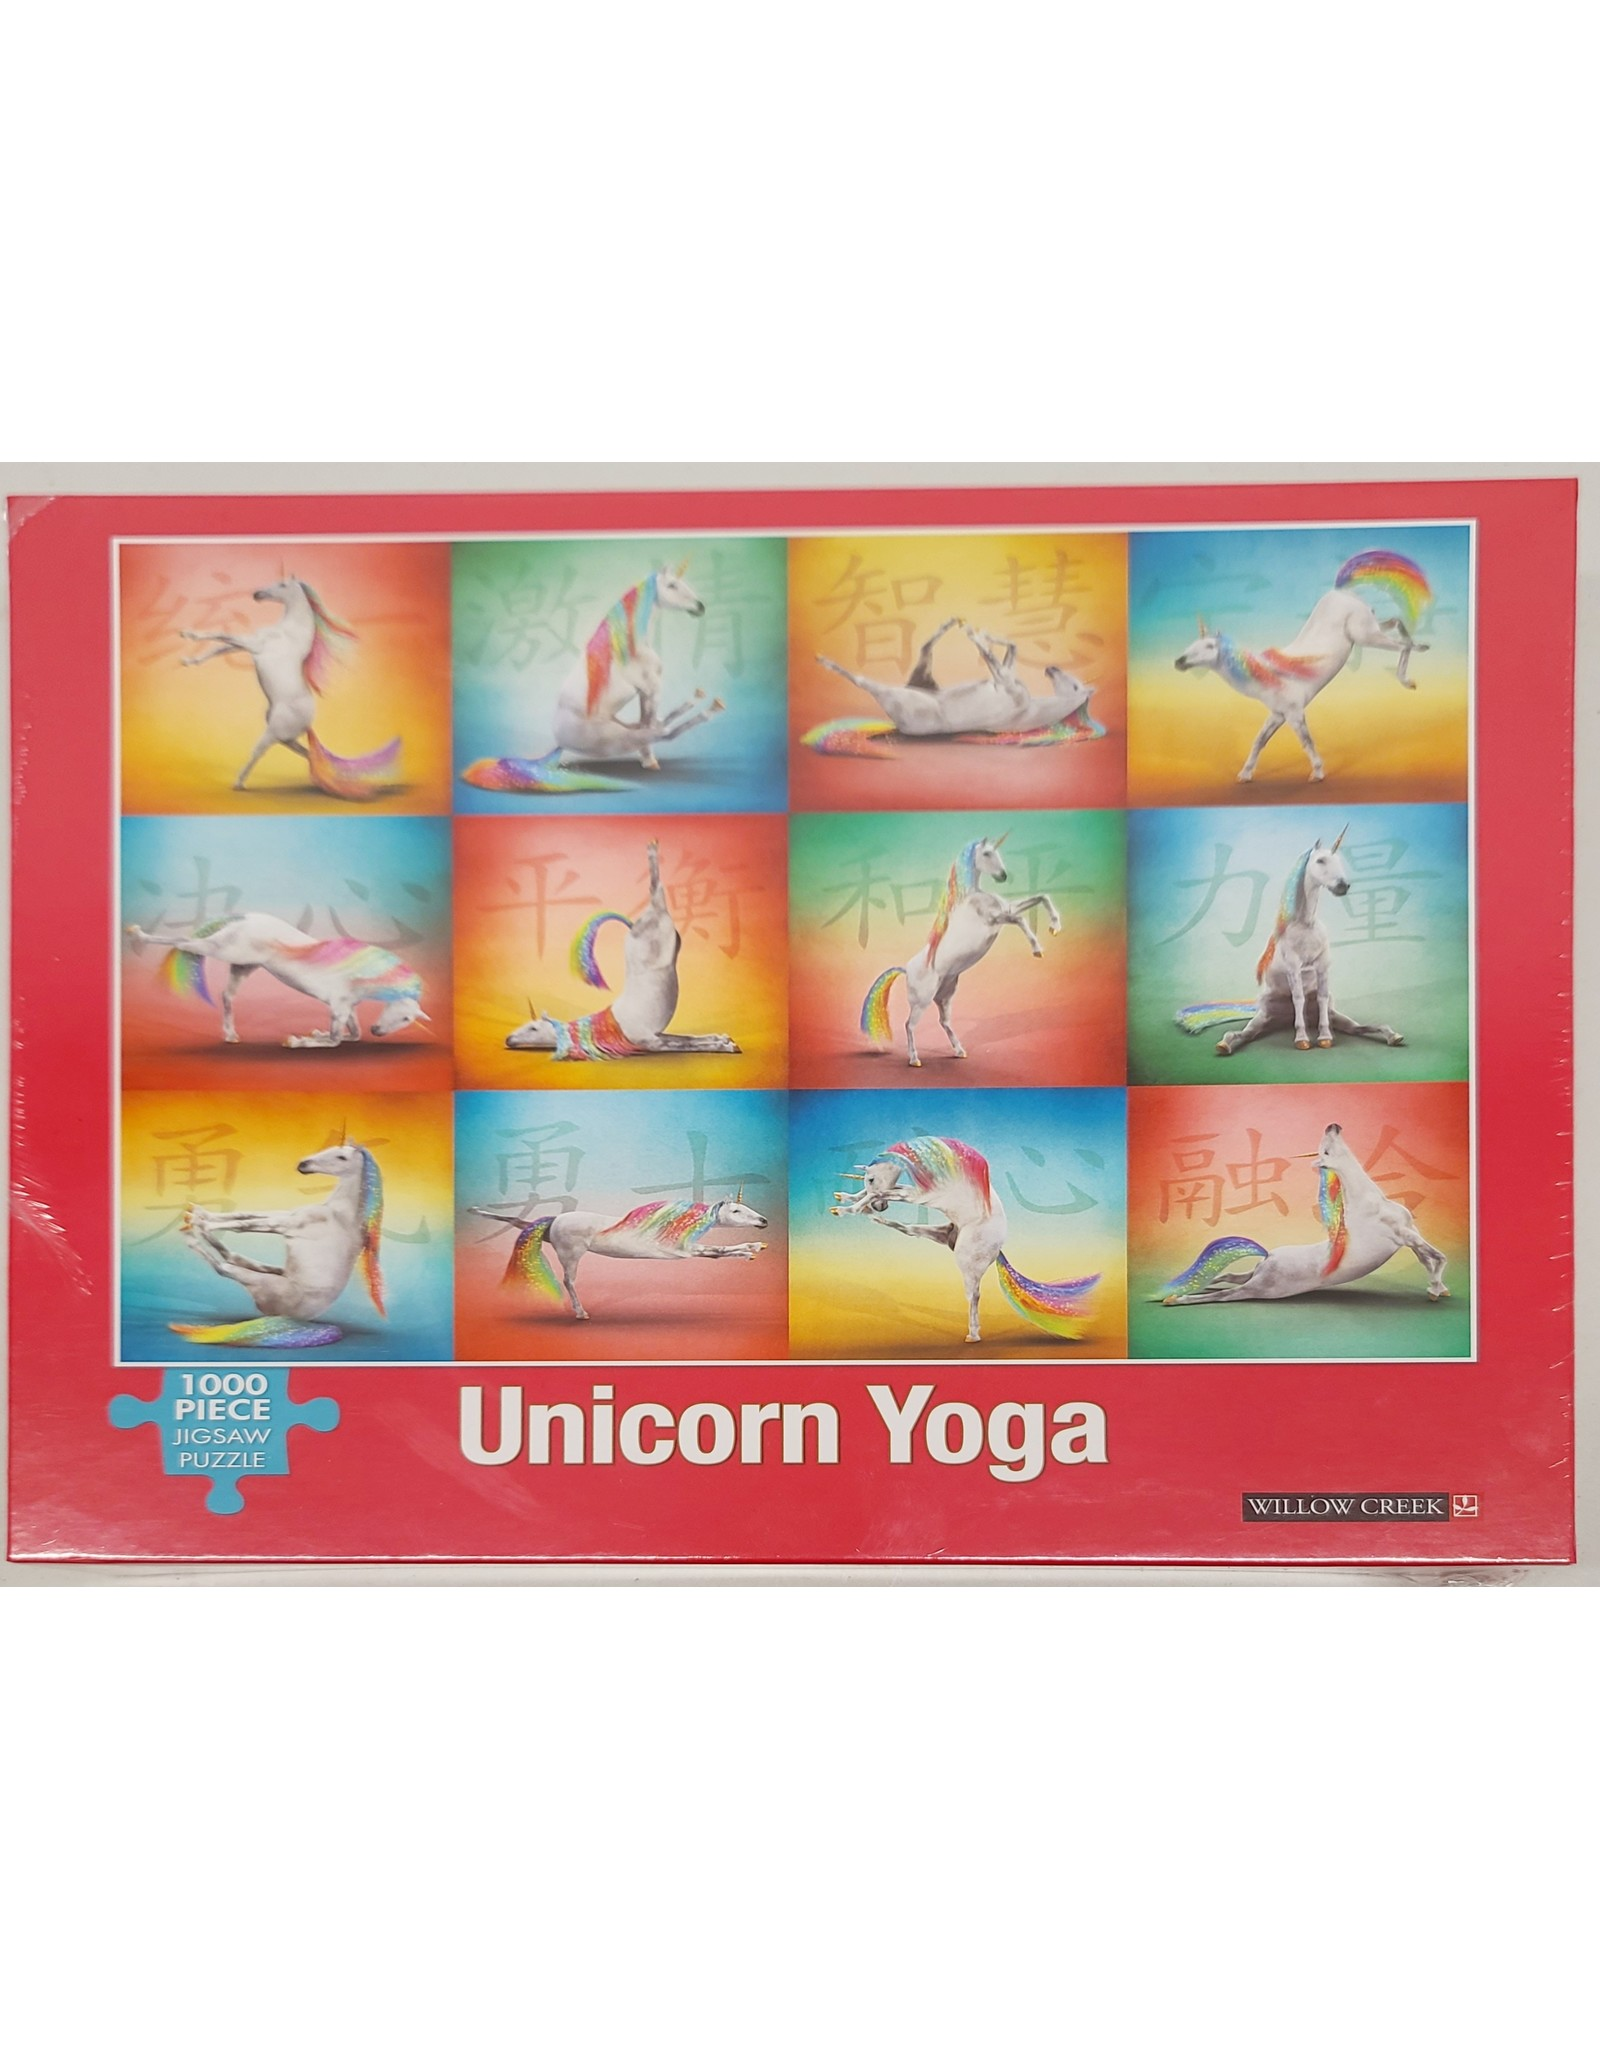 Unicorn Yoga Puzzle 1000 pieces